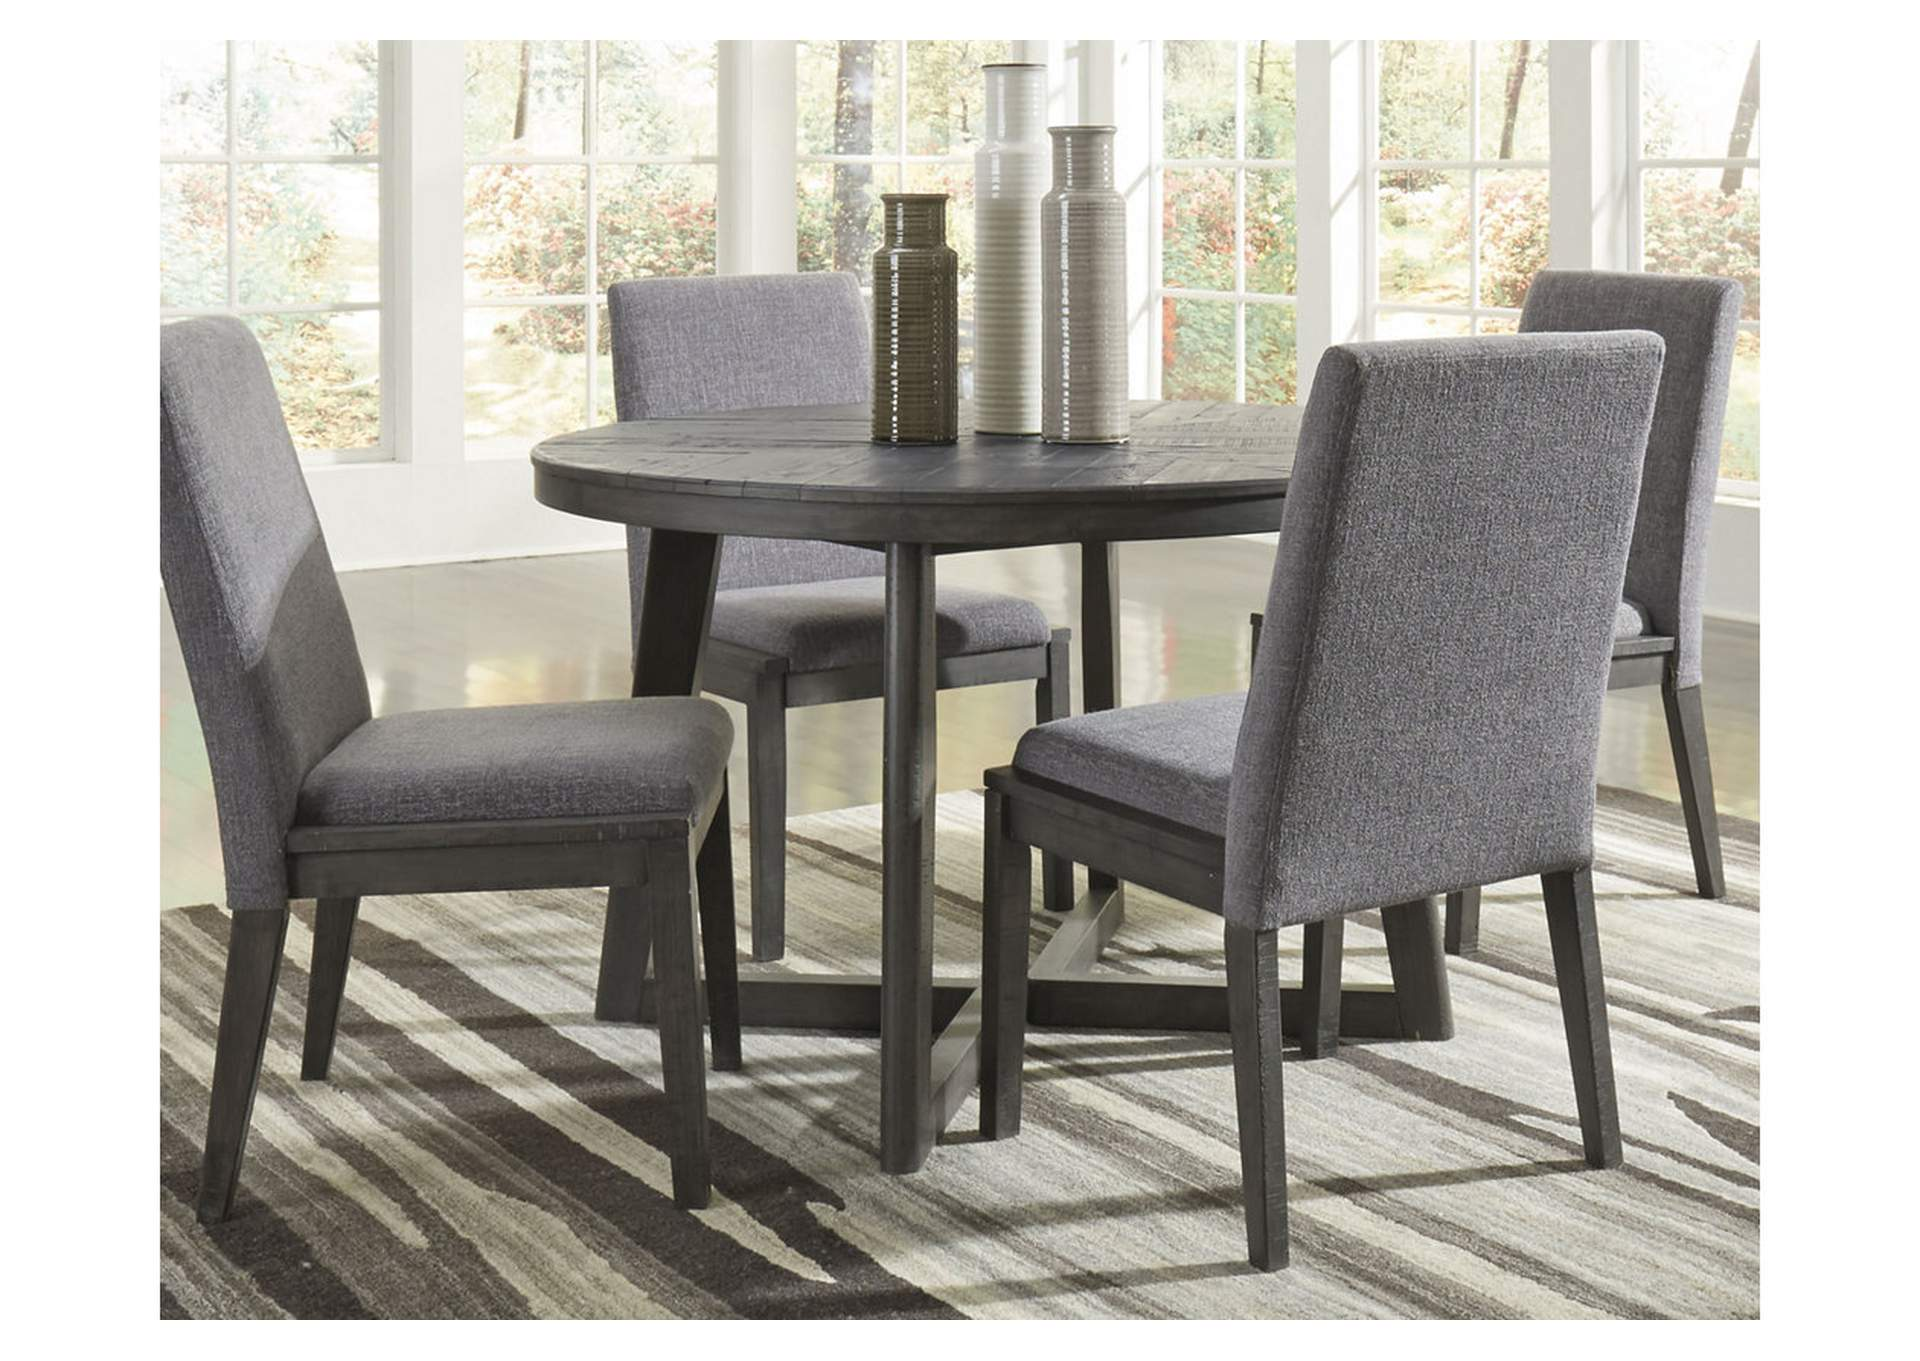 Besteneer Dark Gray Round Dining Room Table,Signature Design By Ashley